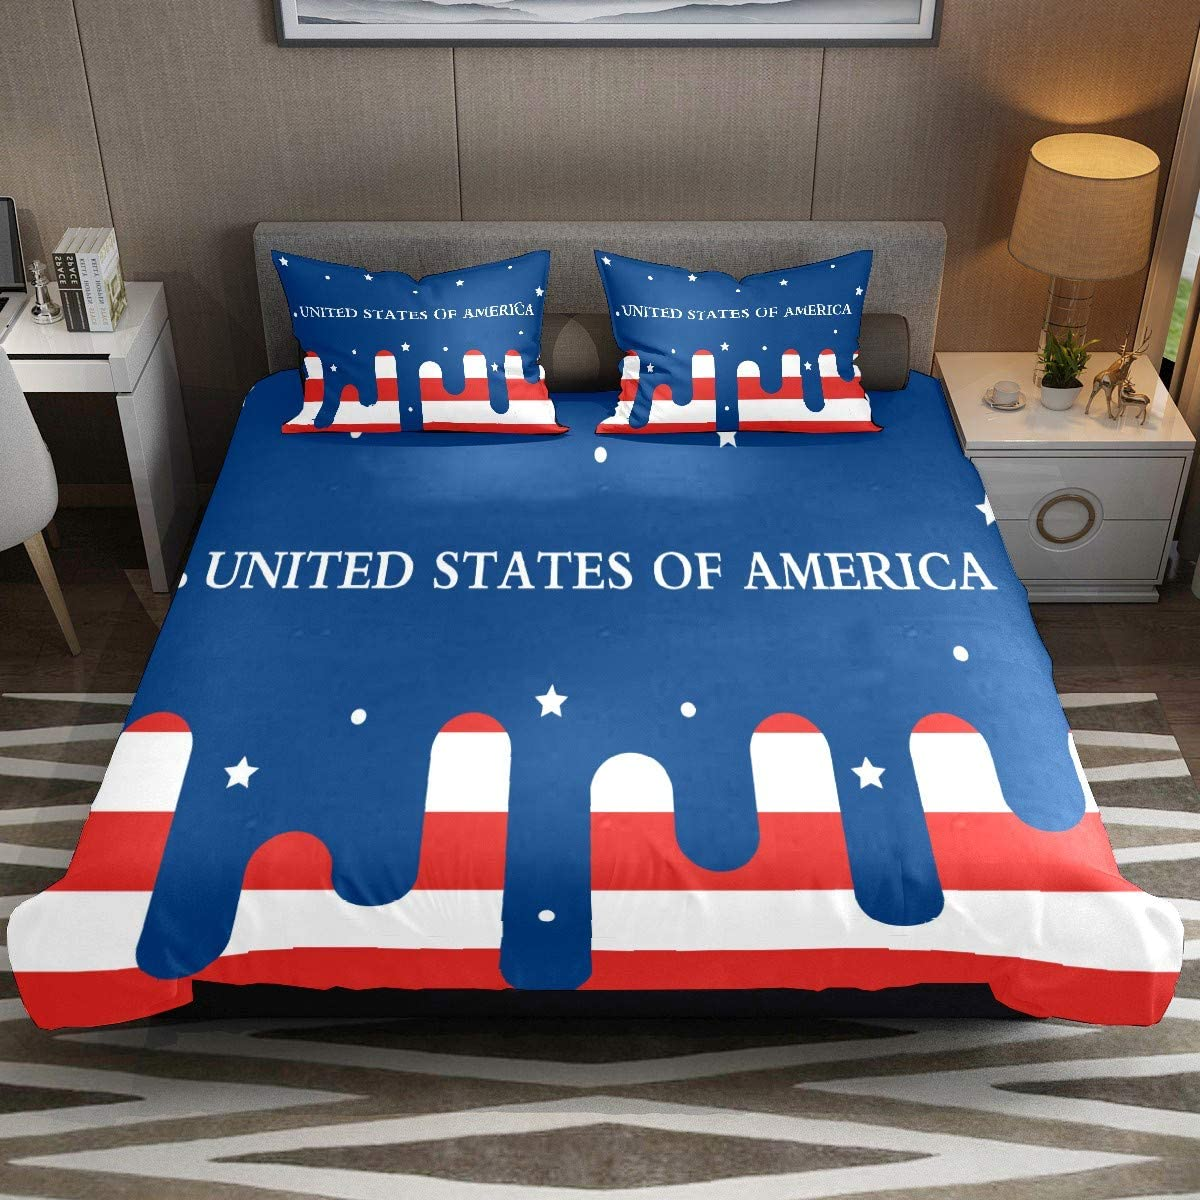 Modern American Flag Printed Comforter Cover Set Full Size 3pcs Duvet Cover Bedding Sets & Collections with Zipper Ties for Woman Teens Kids Modern Customize (1 Quilt Cover +2 Pillowcases)